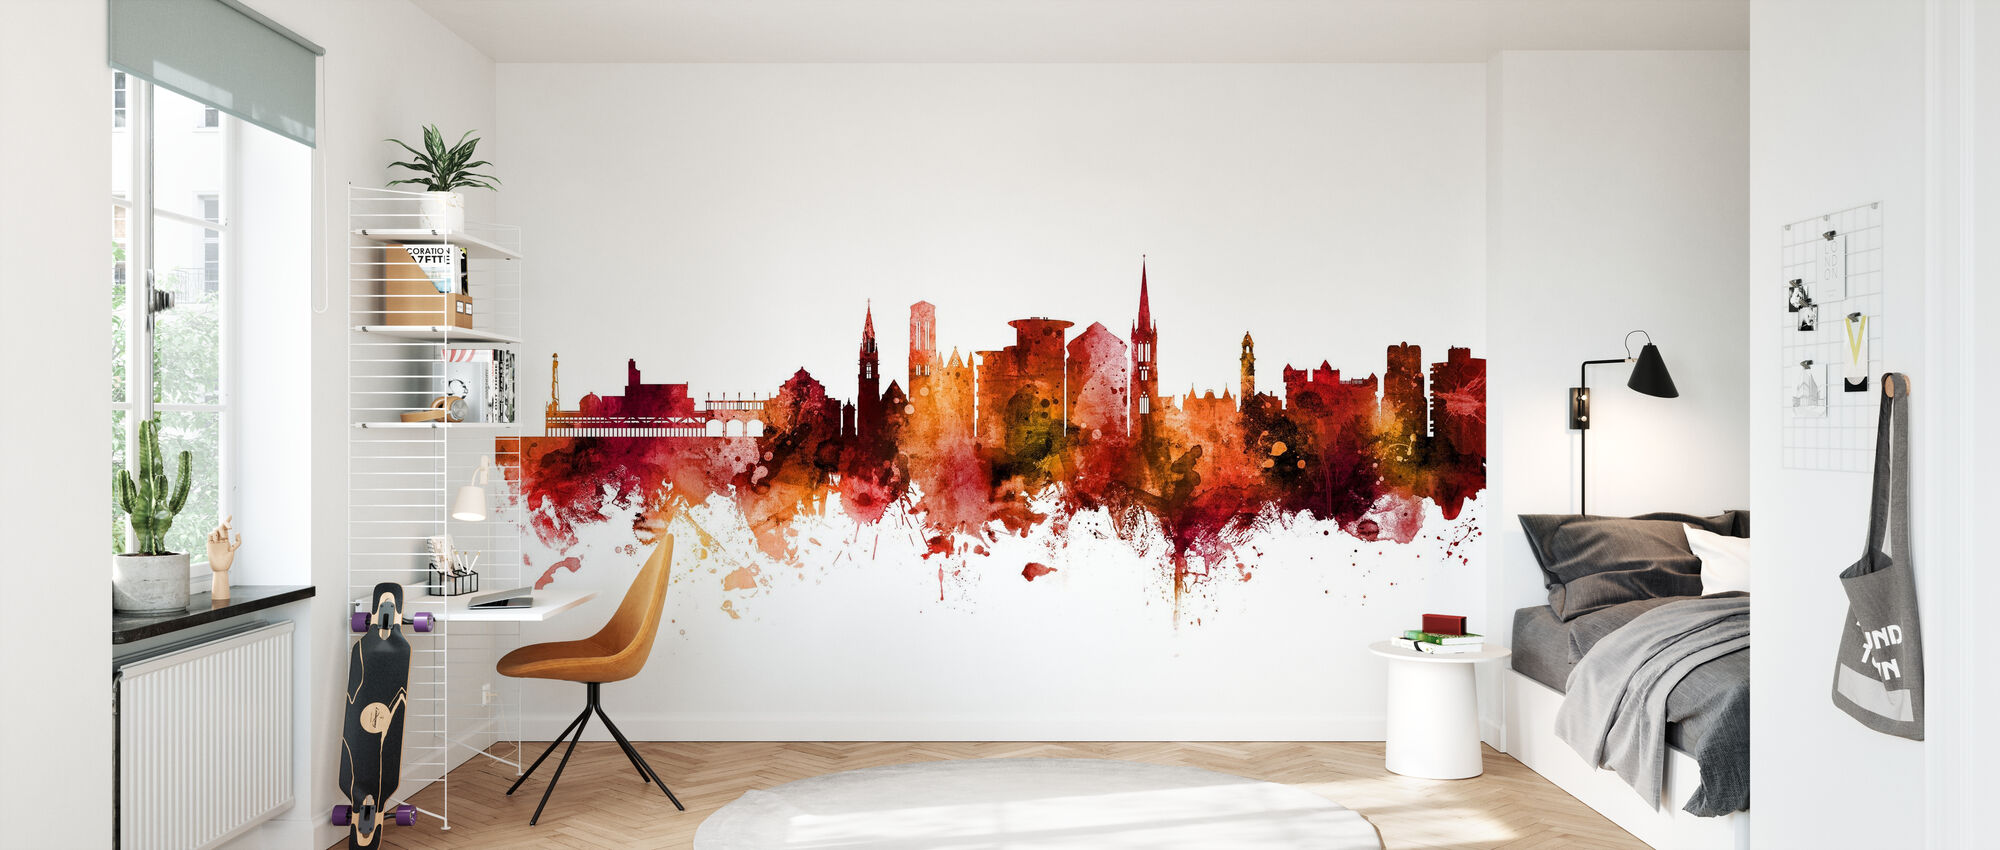 Bournemouth England Skyline - Wallpaper - Kids Room